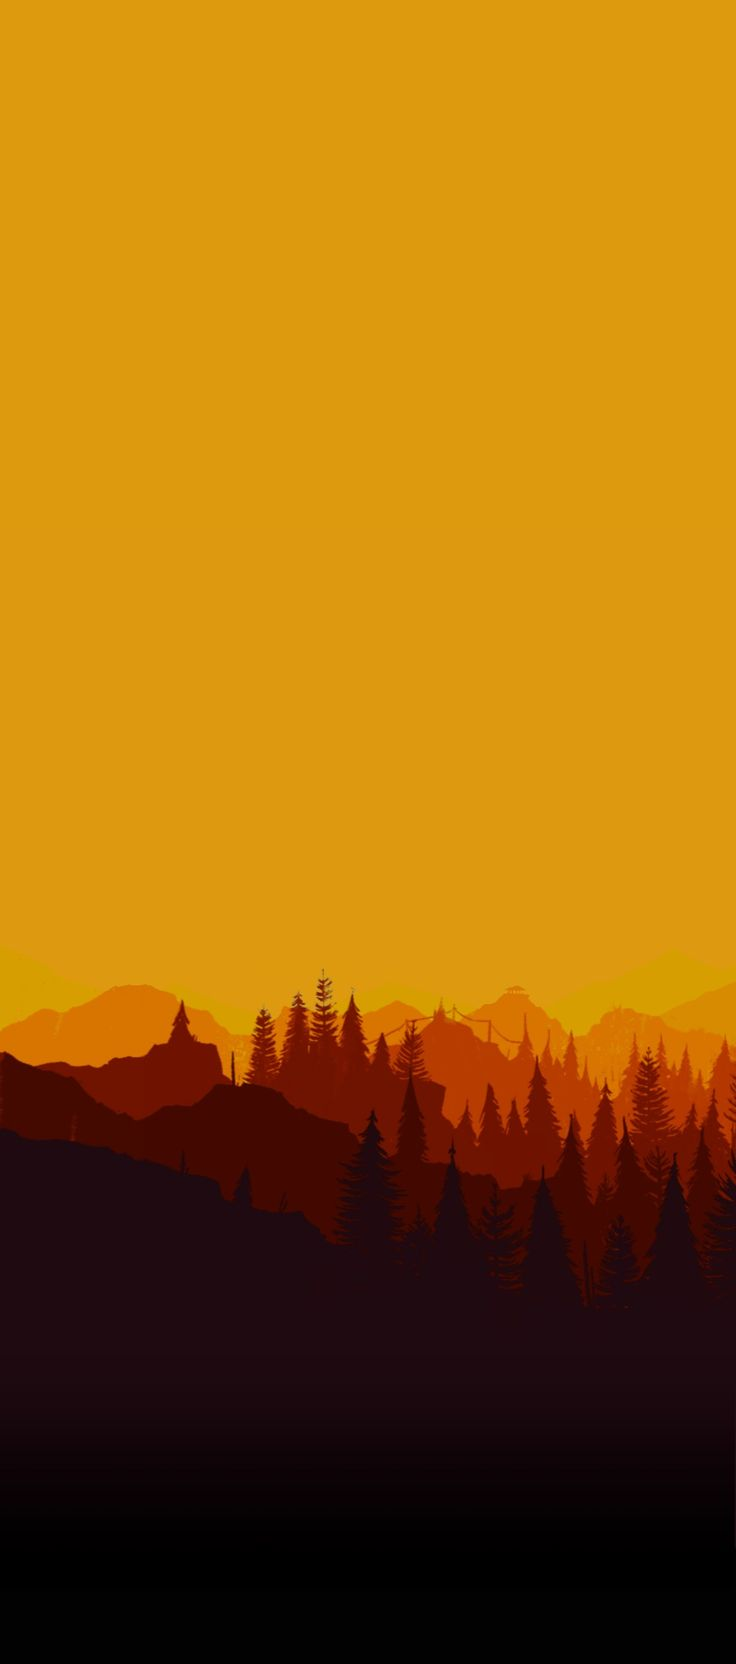 sky, sunrise, mountain, orange, wallpaper, clean, galaxy, colour, abstract, digital art, s8, walls, Samsung, galaxy s8, s9 sky, sunrise, mountain, orange, wallpaper, clean, galaxy, colour, abstract, digital art, s8, walls, Samsung, galaxy s8, s9